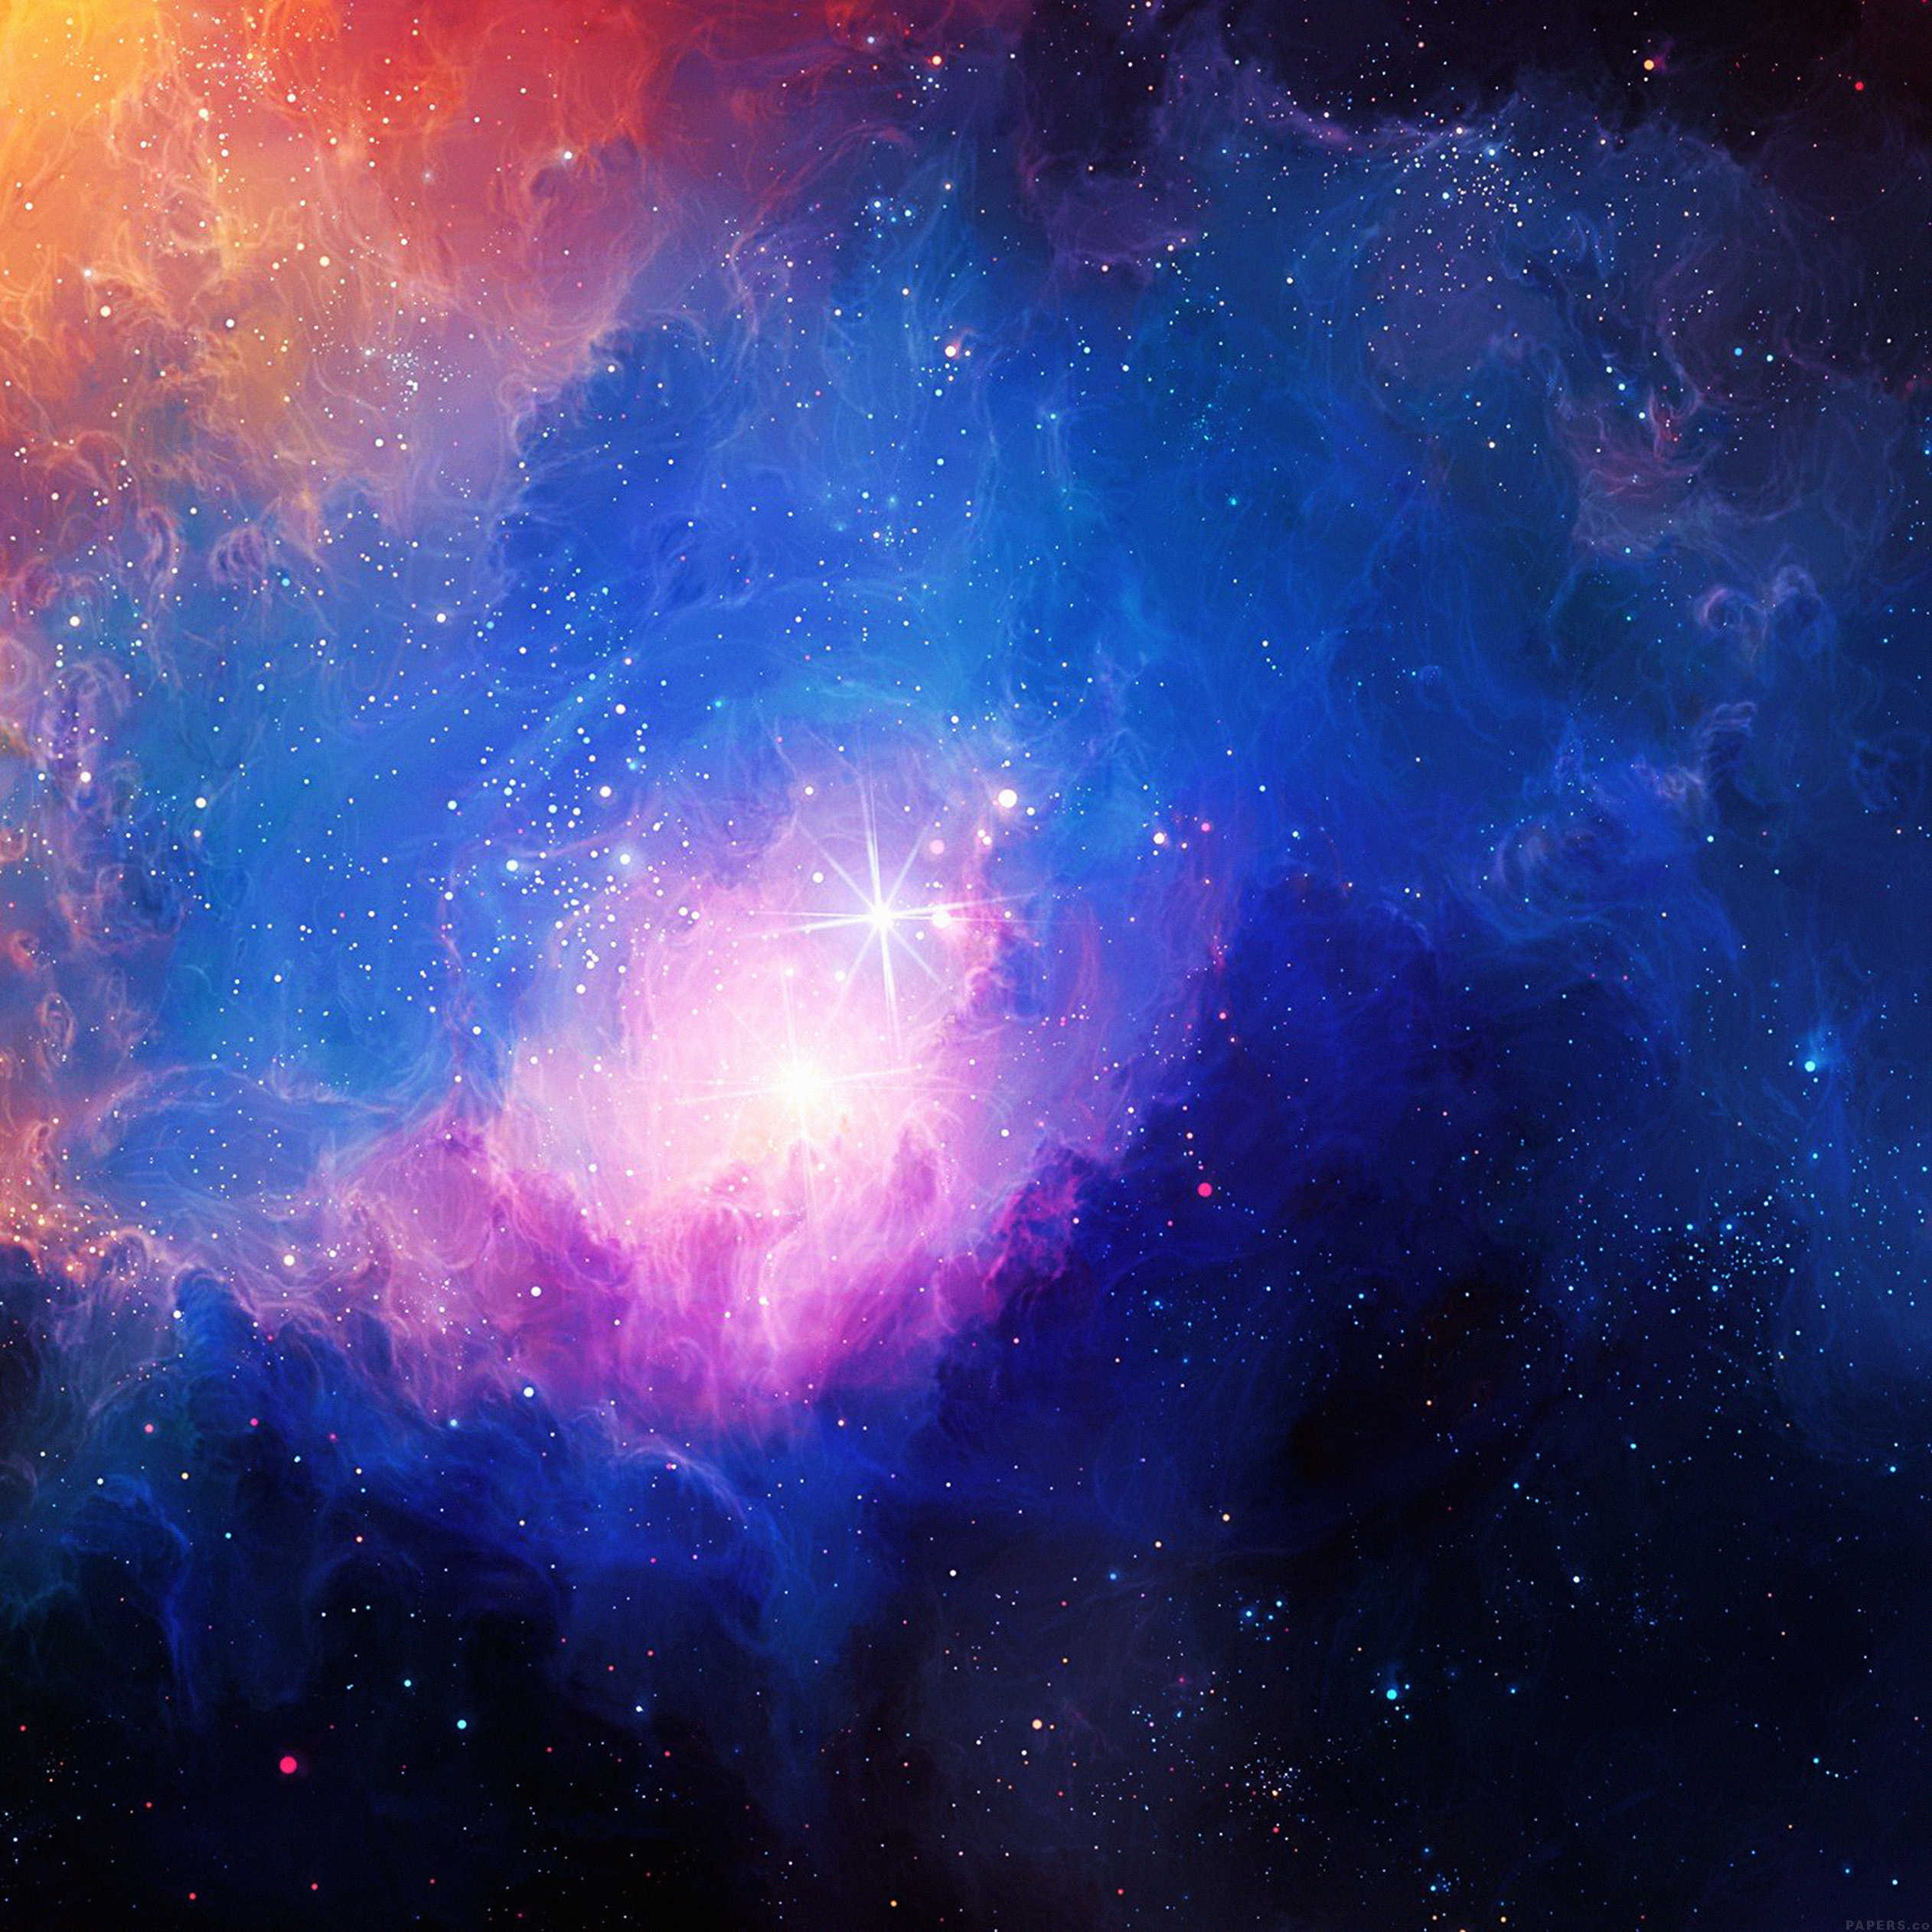 Wallpapers Fofo Cutes Gorgeous Galaxy Wallpapers For Iphone And Ipad